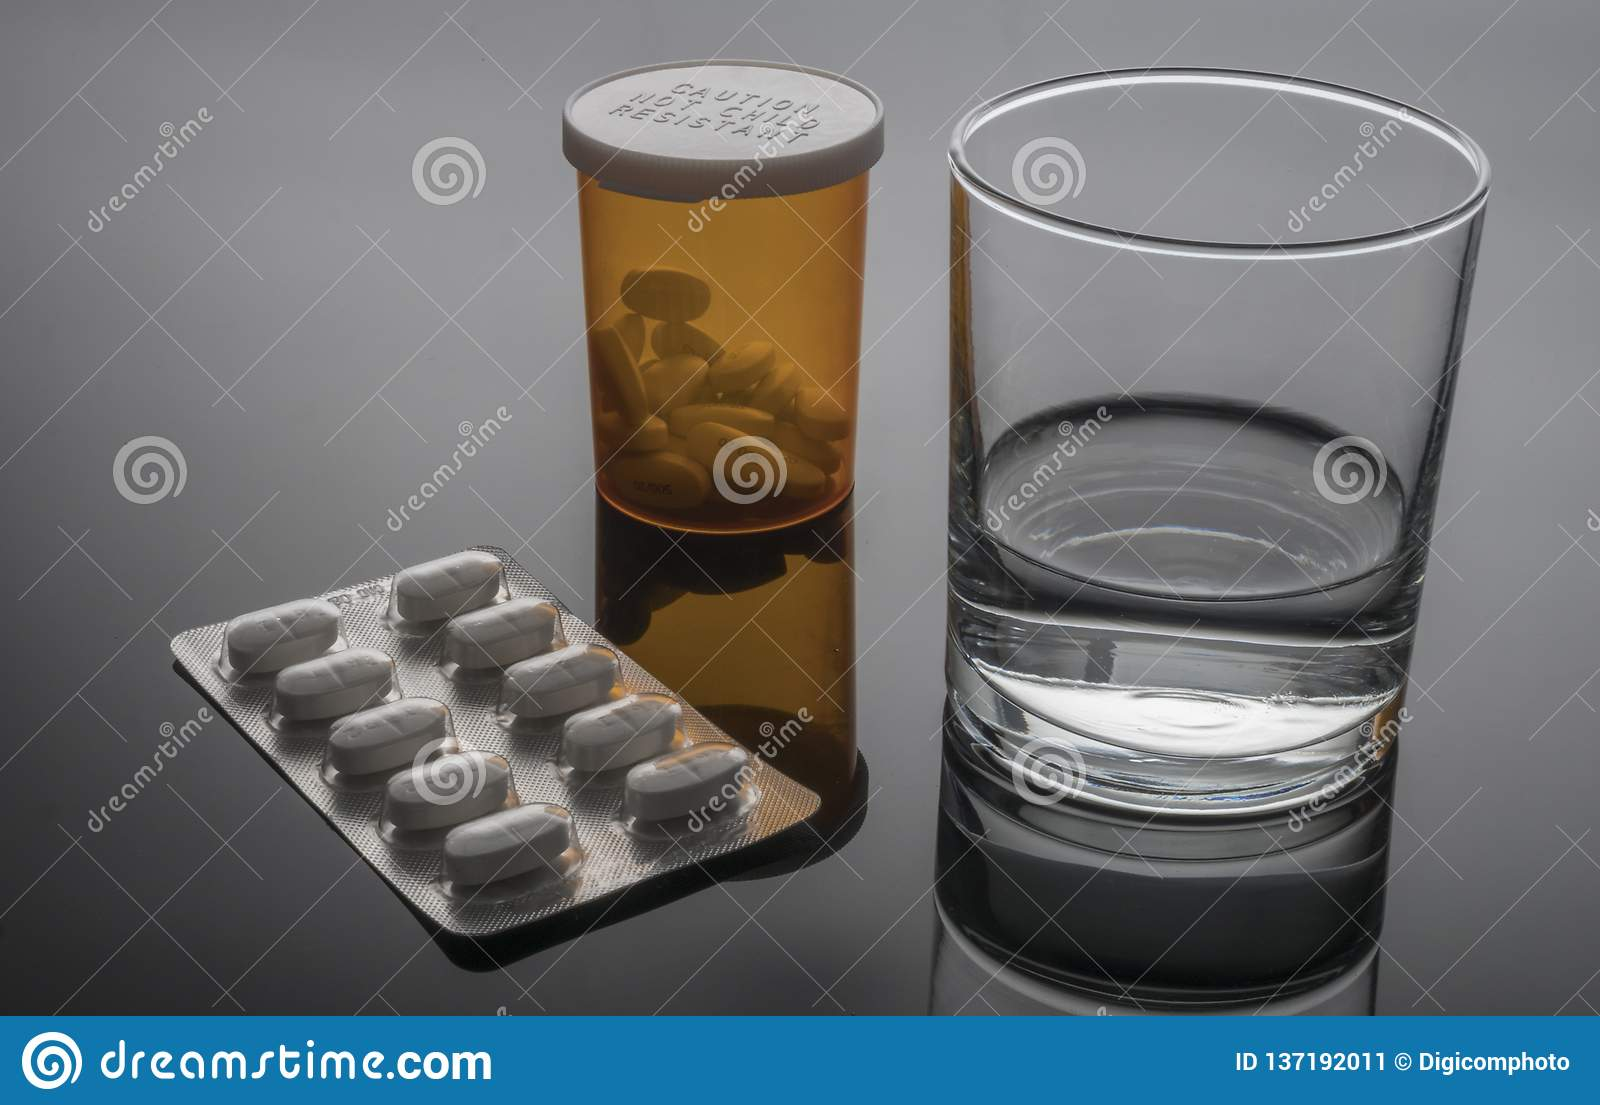 Glass of water next to blister pack of pills